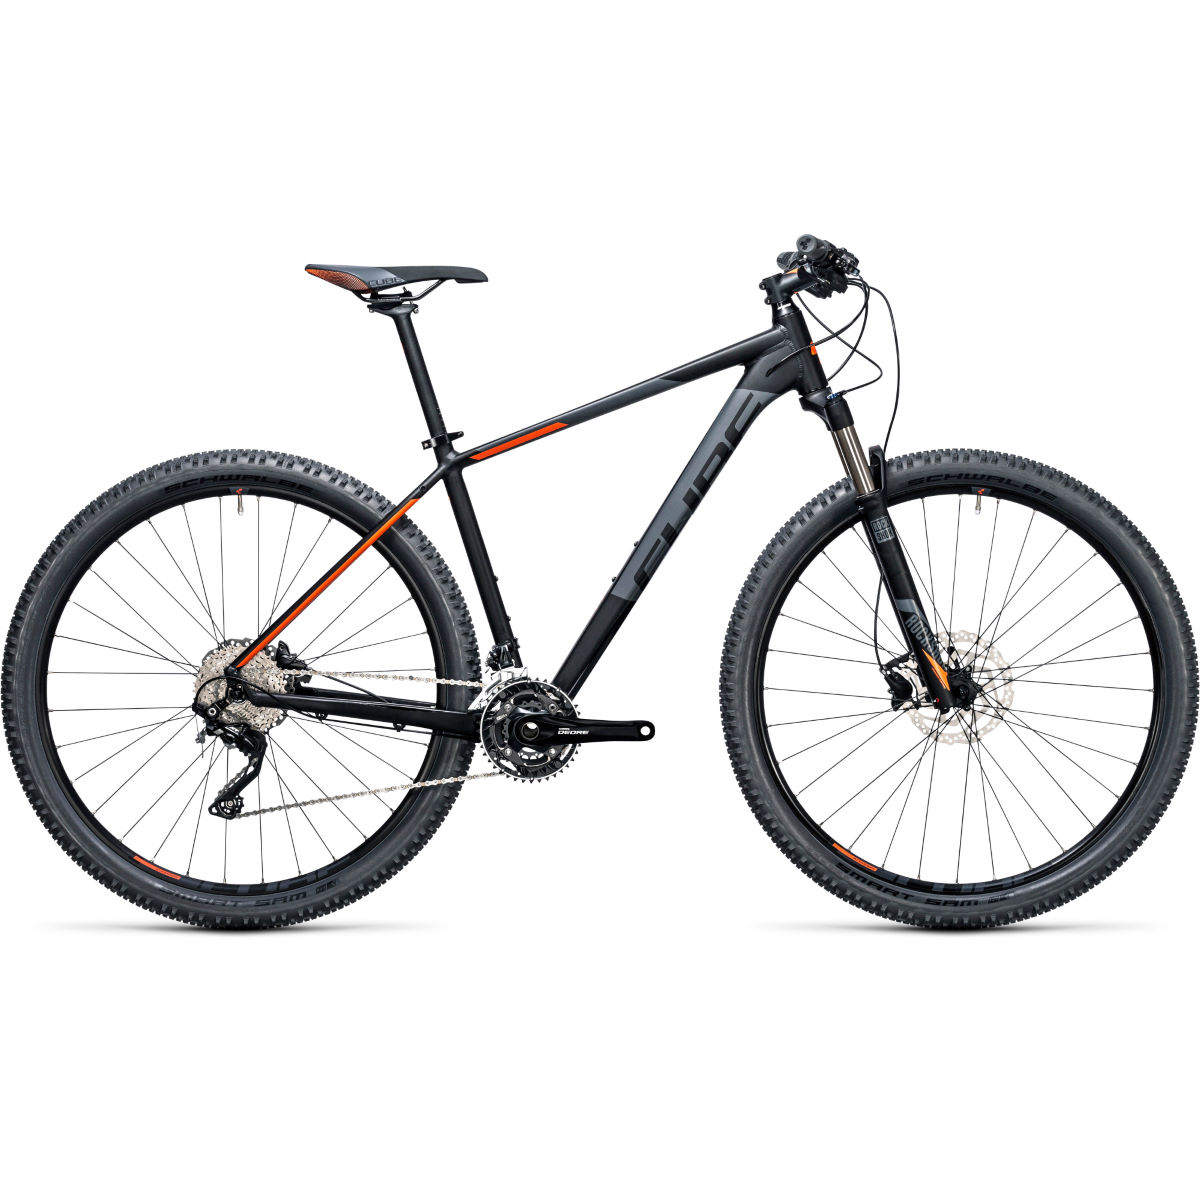 VTT semi-rigide Cube Attention SL 27,5 pouces (2017) - 18'' Stock Bike